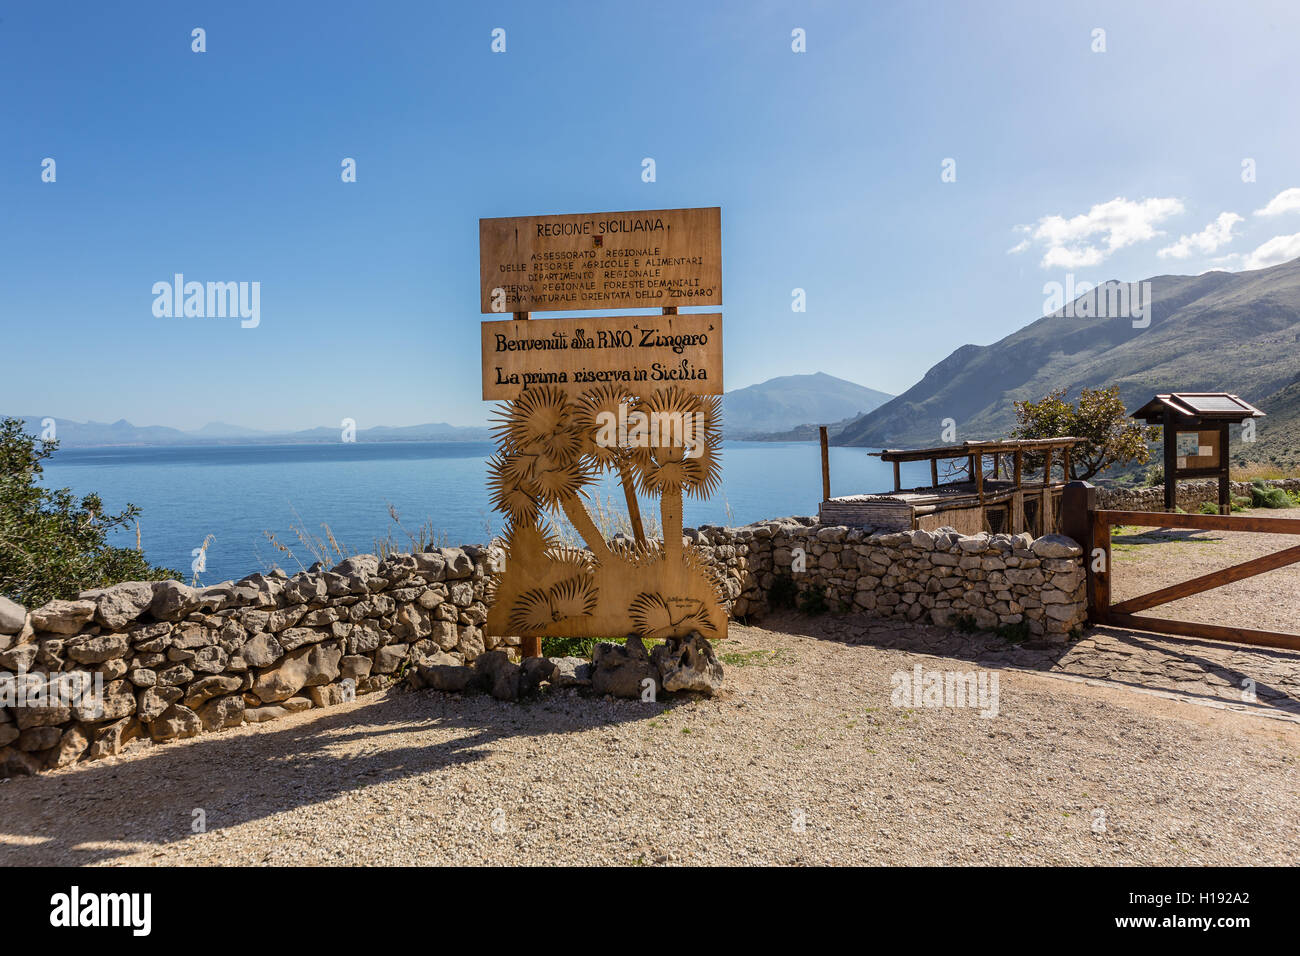 The main entrance in the Zingaro natural reserve in the Province of Trapani, Sicily - Stock Image